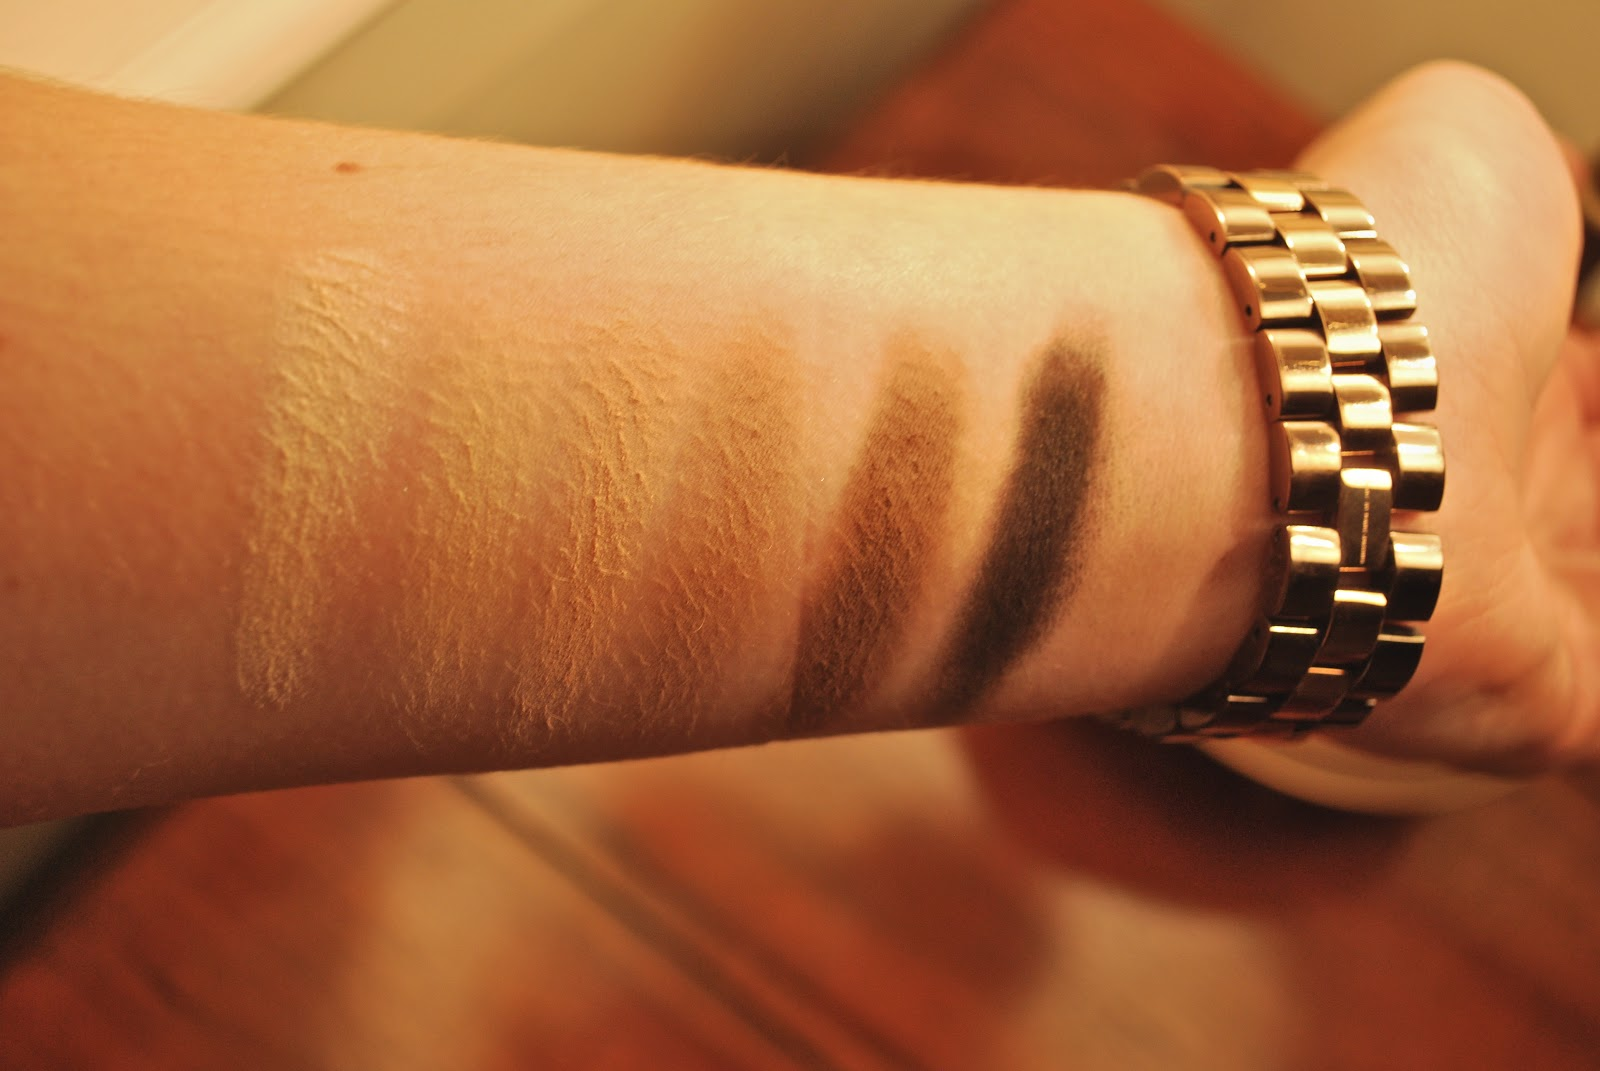 Urban Decay Naked Basics Palette swatches